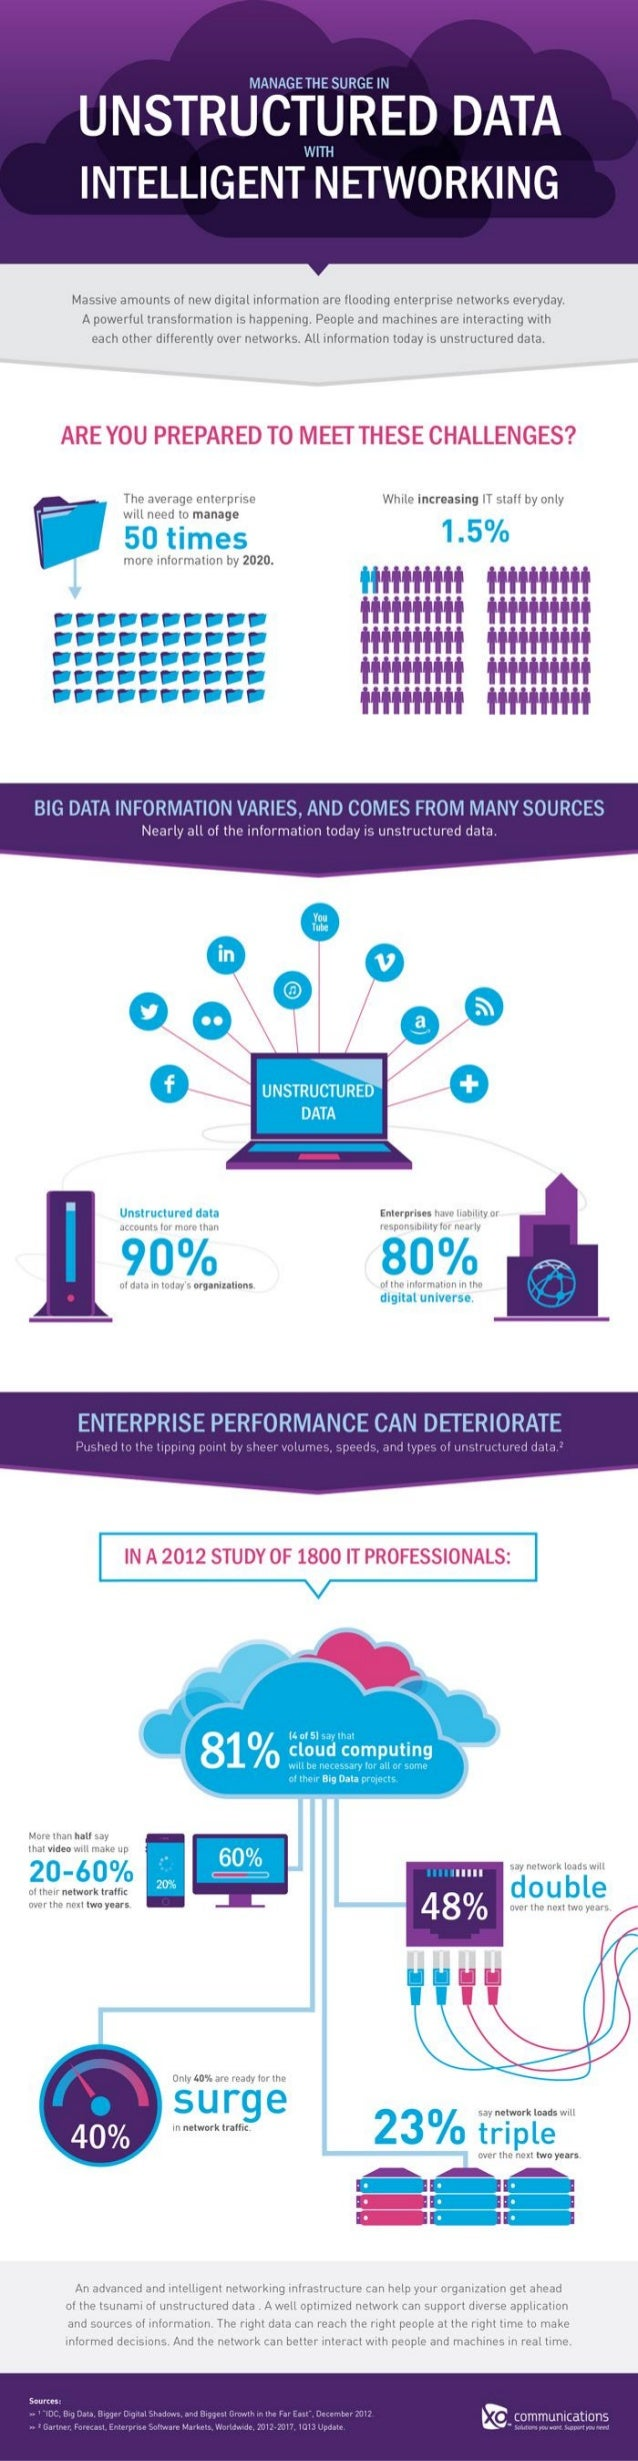 Manage the Surge in Unstructured Data